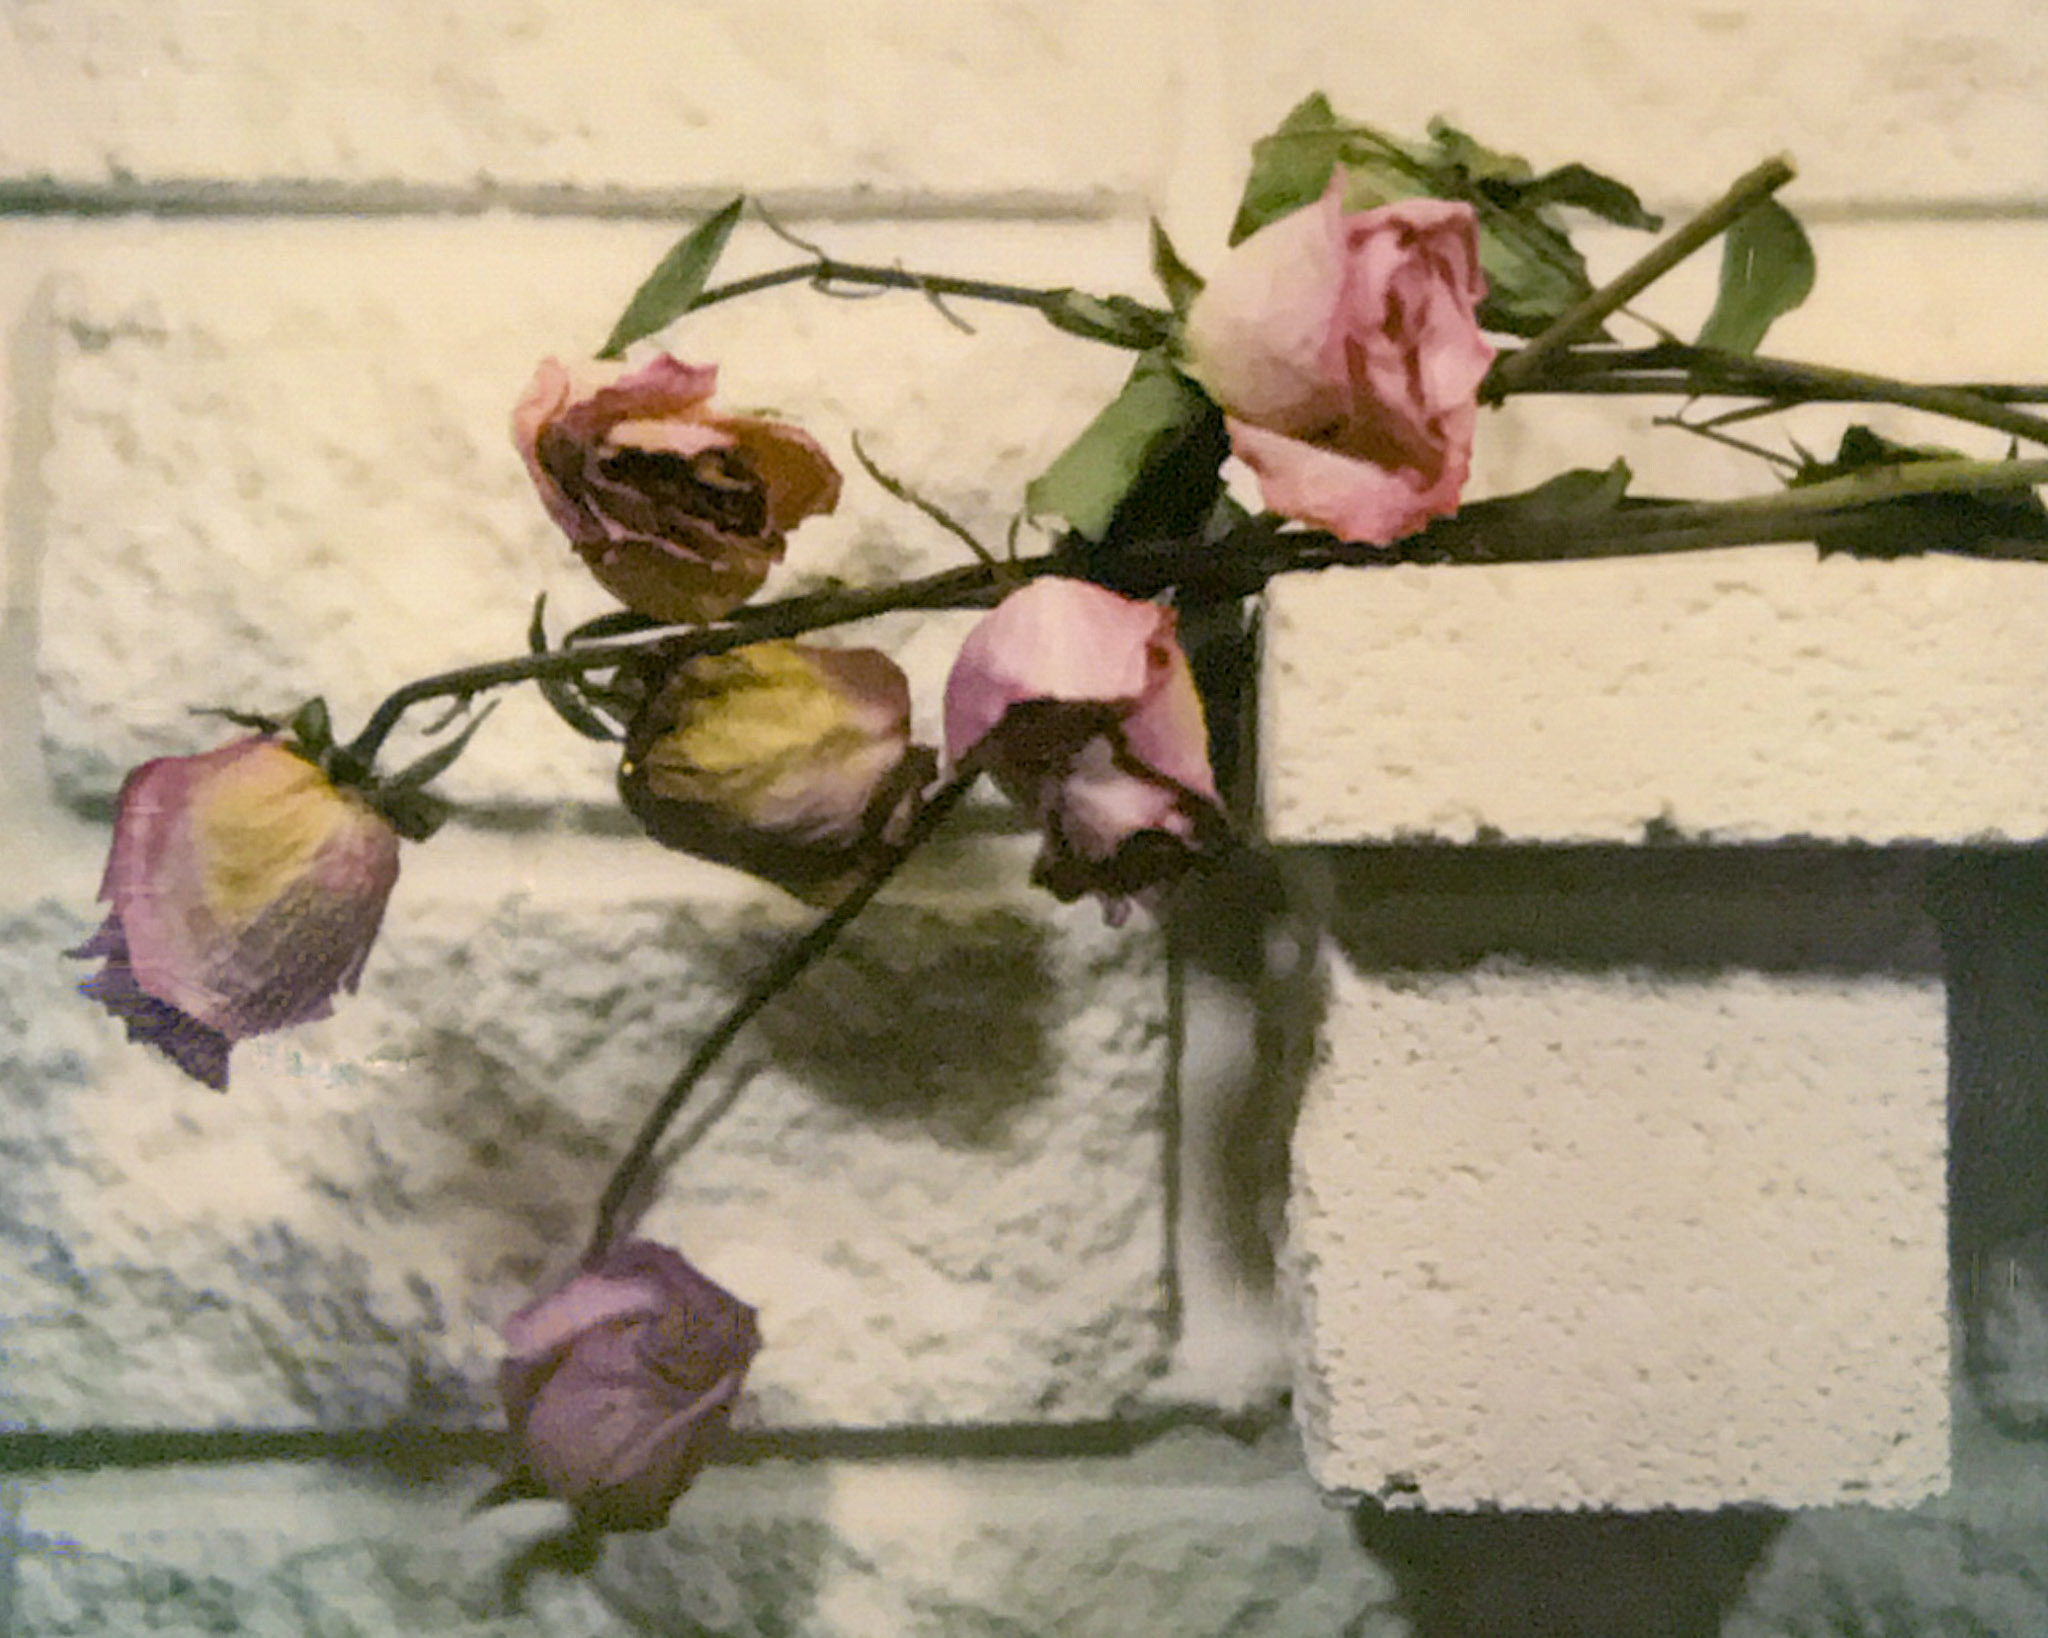 Dried Roses and Bricks – SX-70